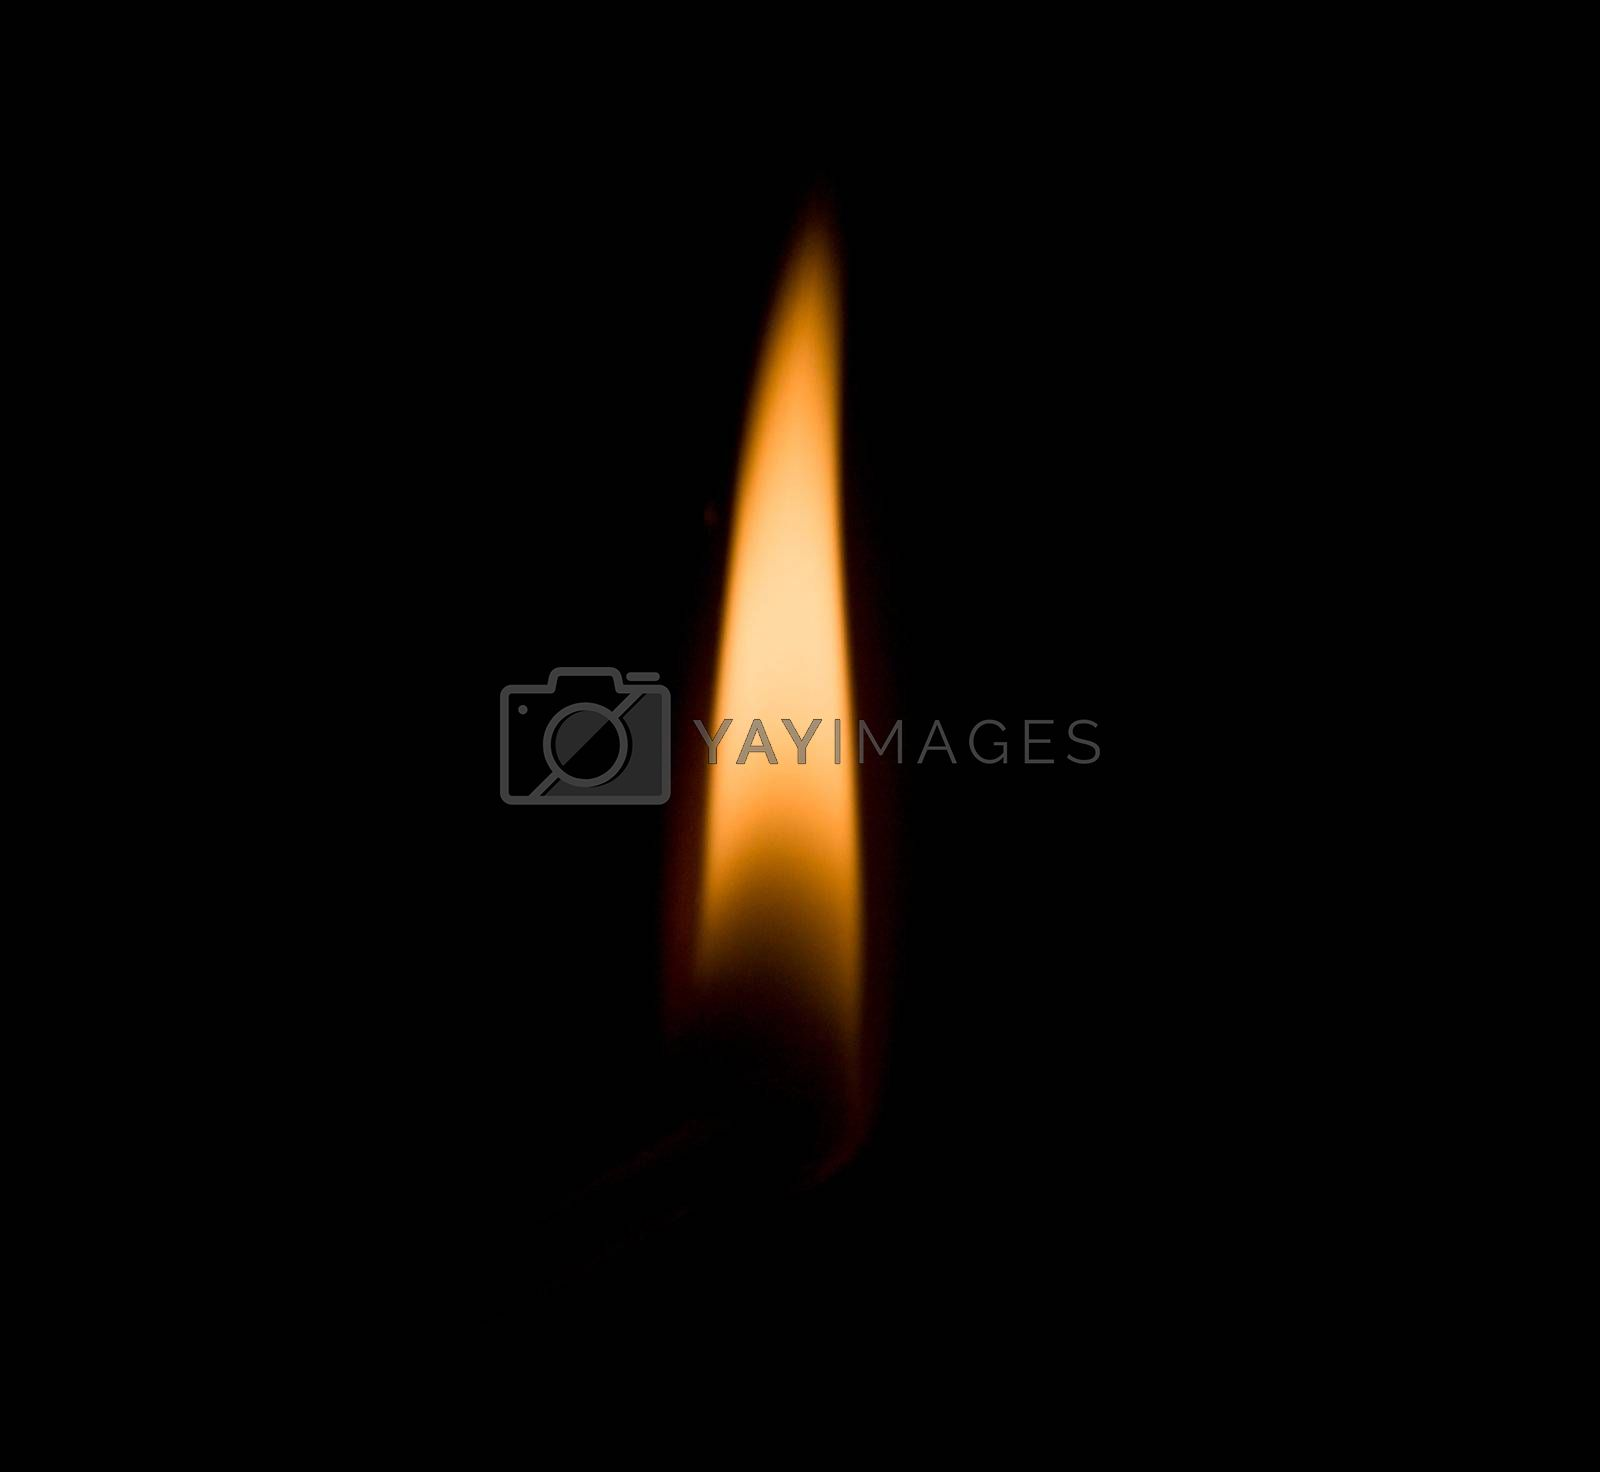 Royalty free image of flame of candle by Alekcey